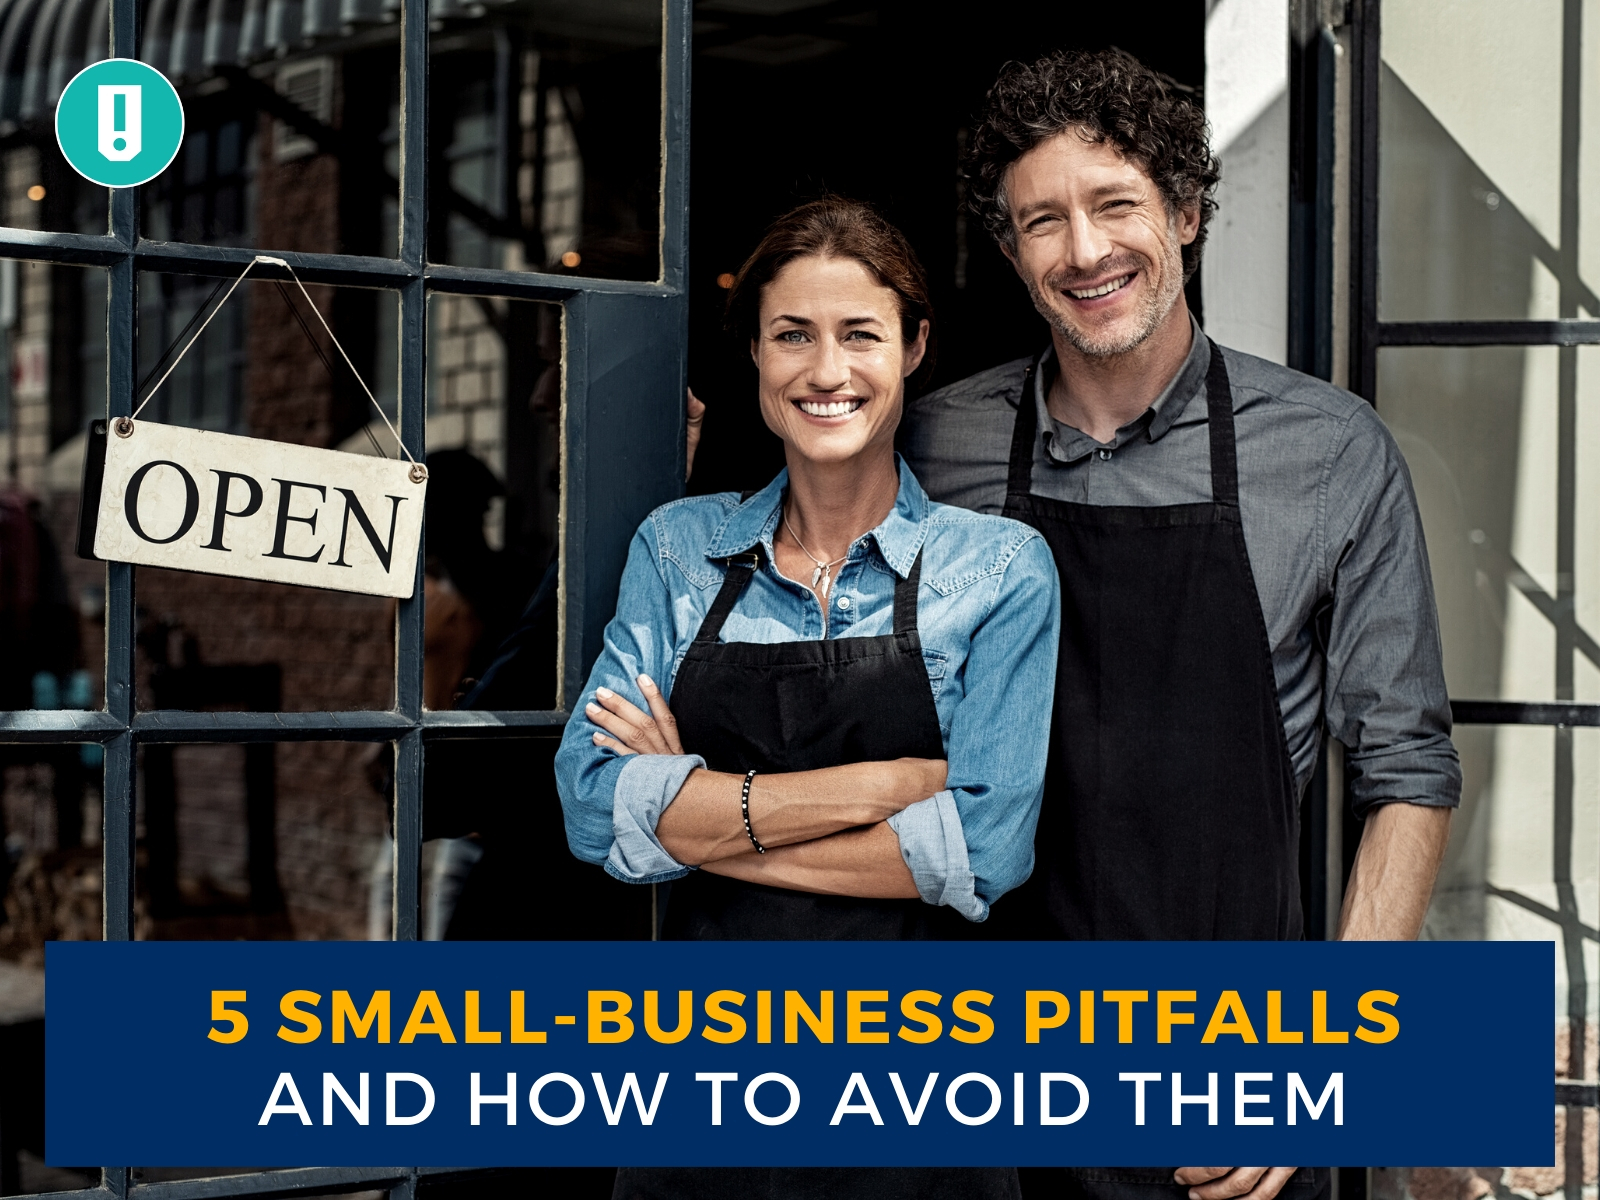 5 Small-Business Pitfalls and How to Avoid Them